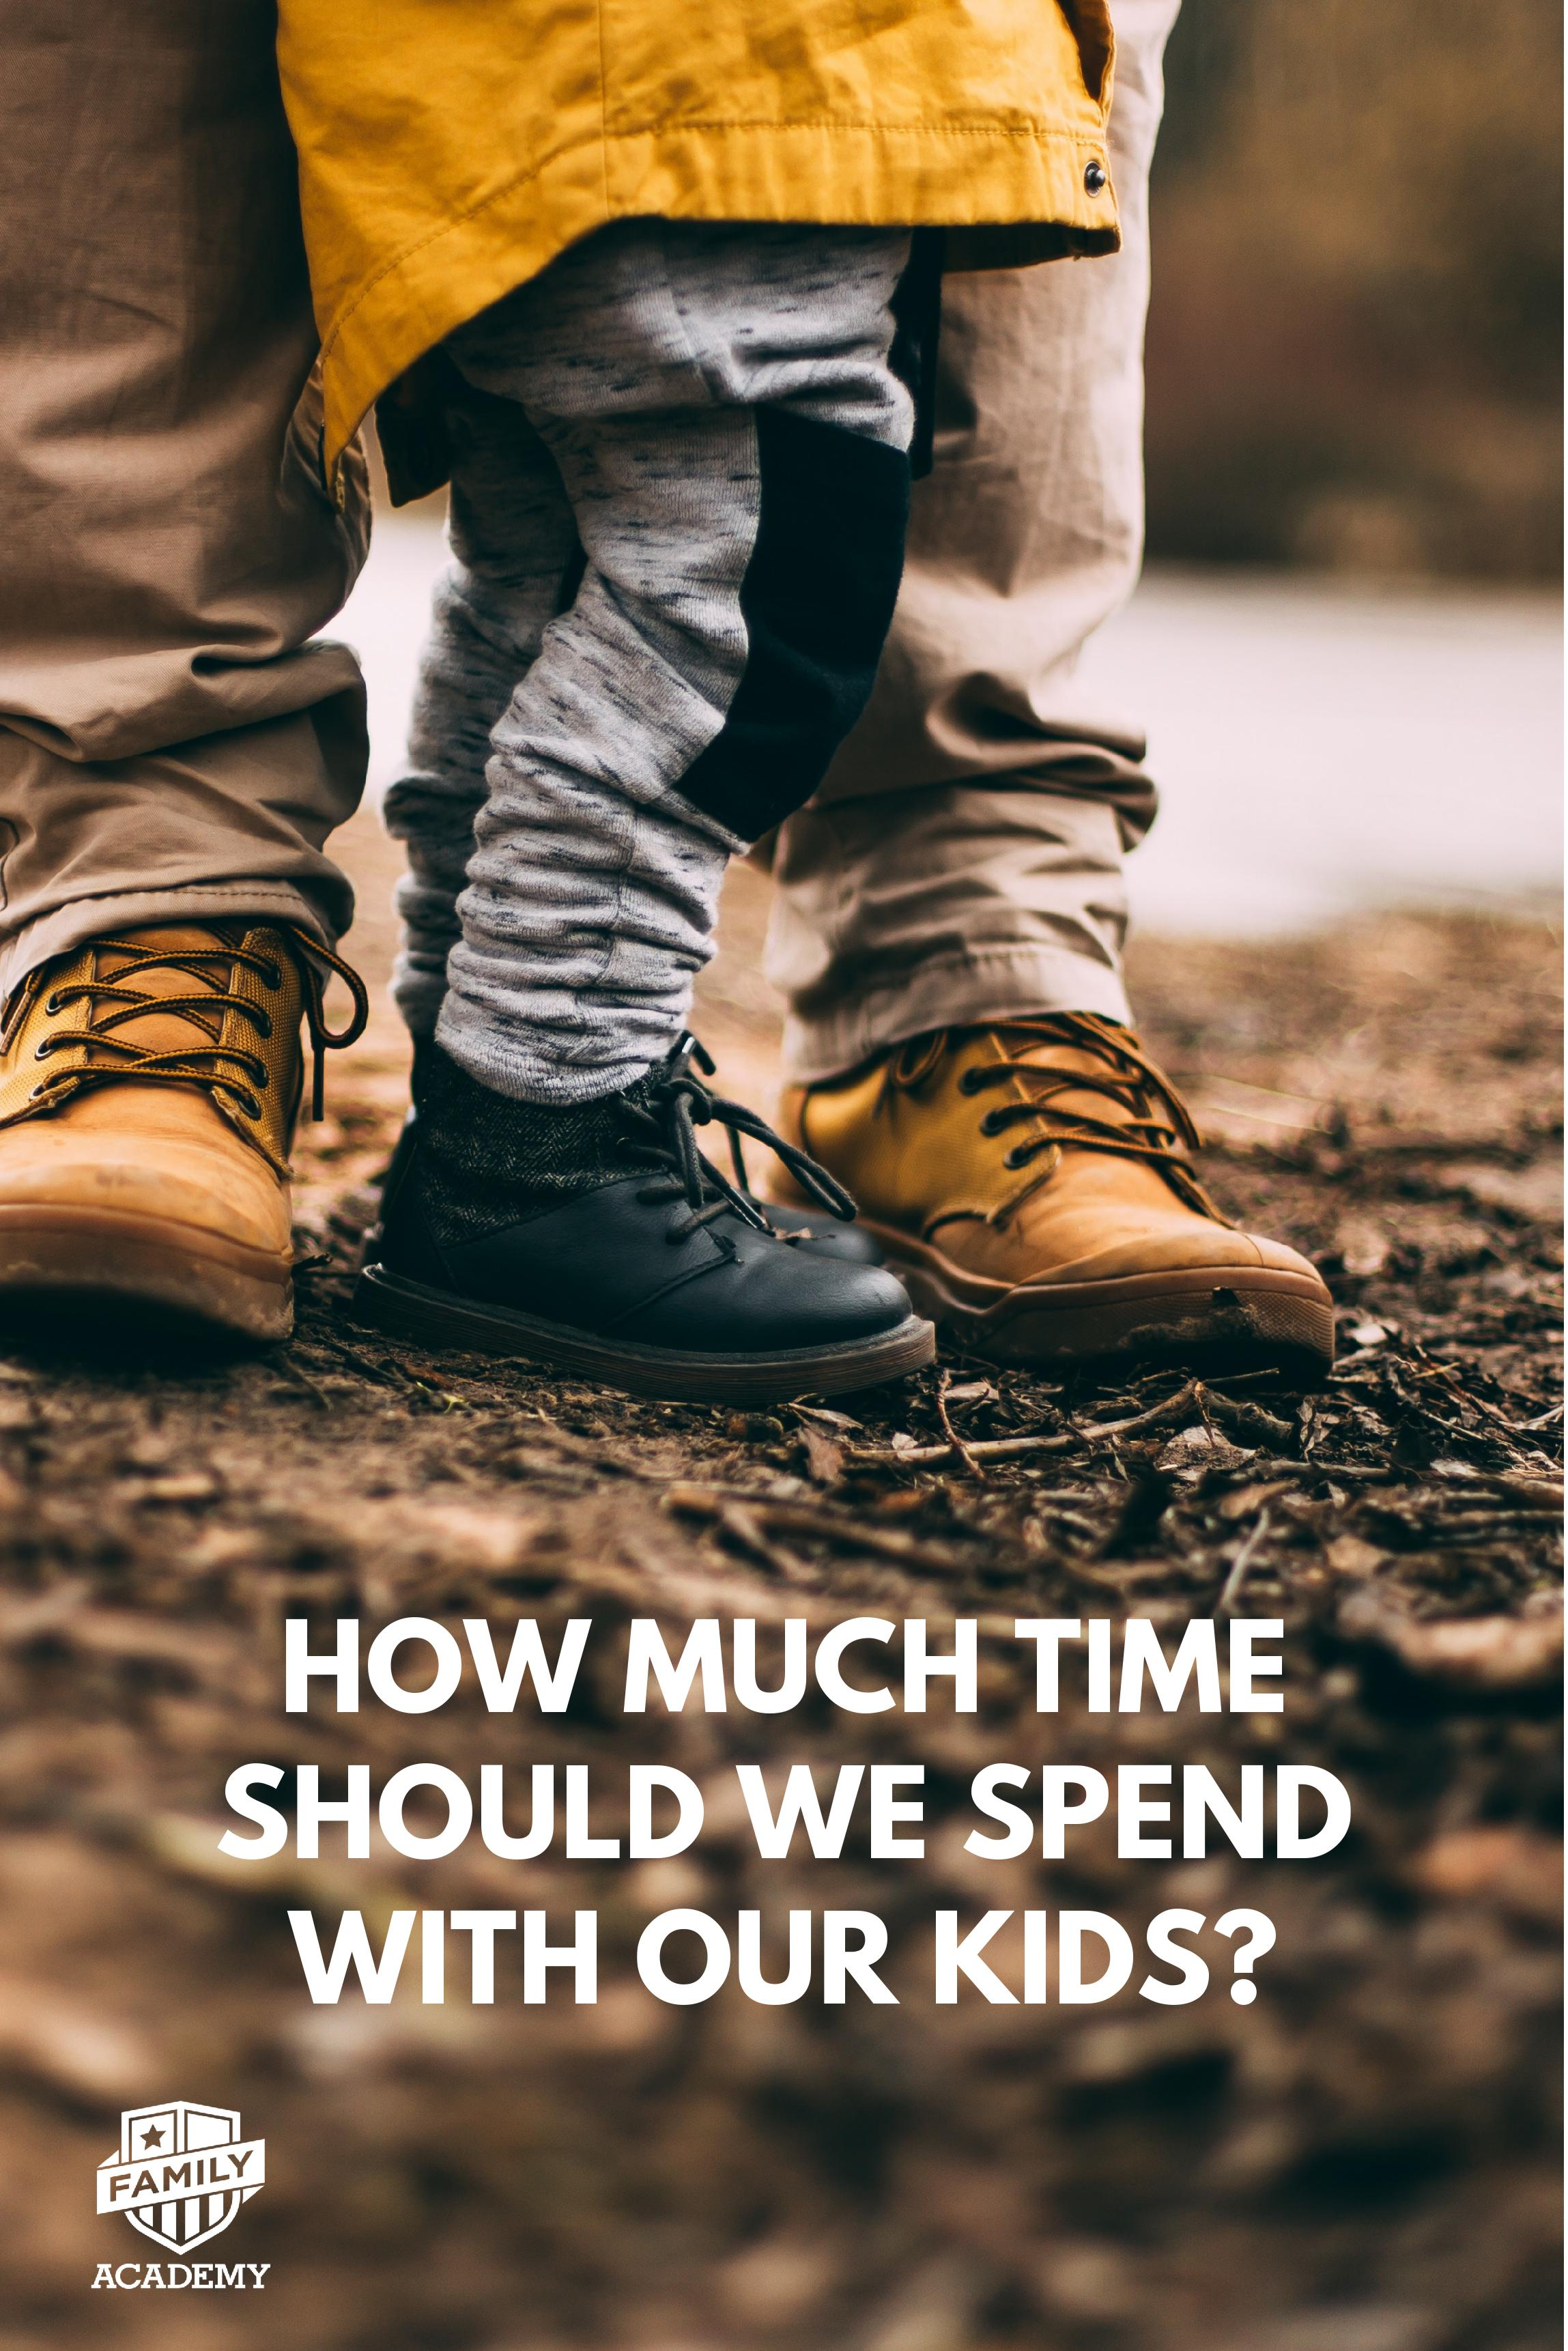 How much time should we spend with our kids?